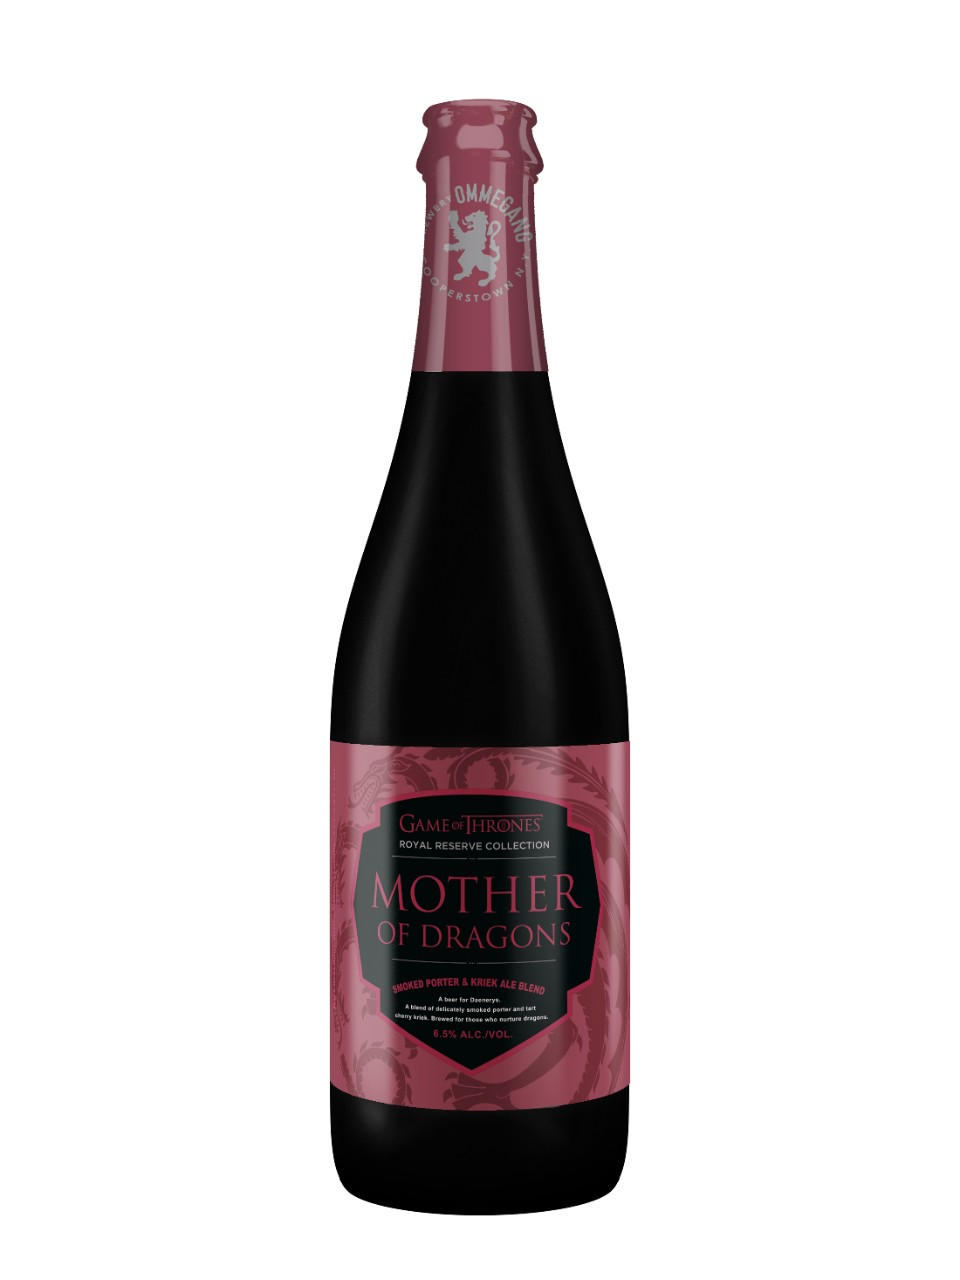 Image for Mother of Dragons (Game of Thrones Royal Reserve) from LCBO